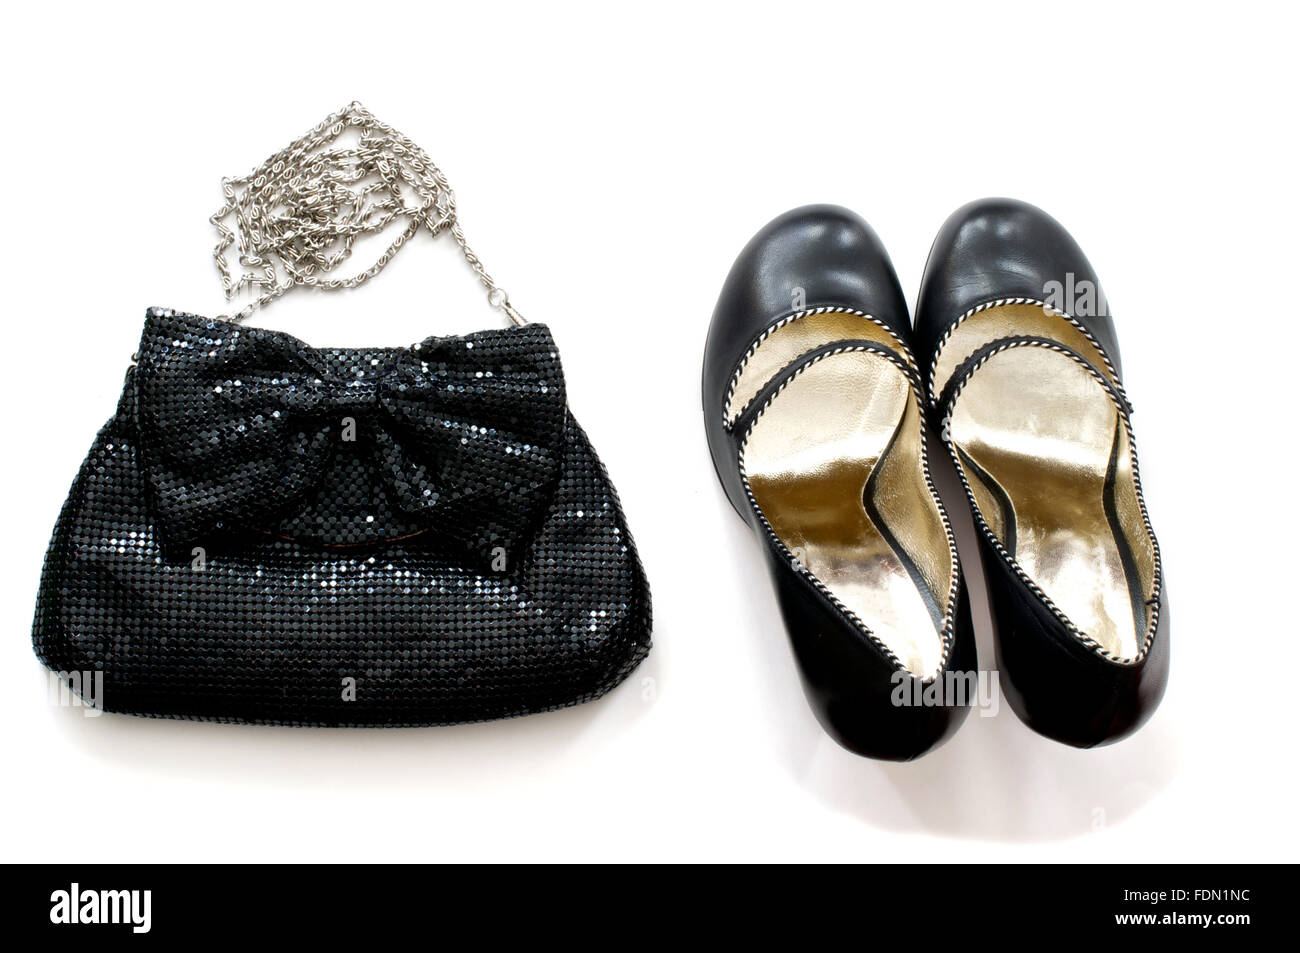 Isolated black clutch bag with high heels shoes over white - Stock Image